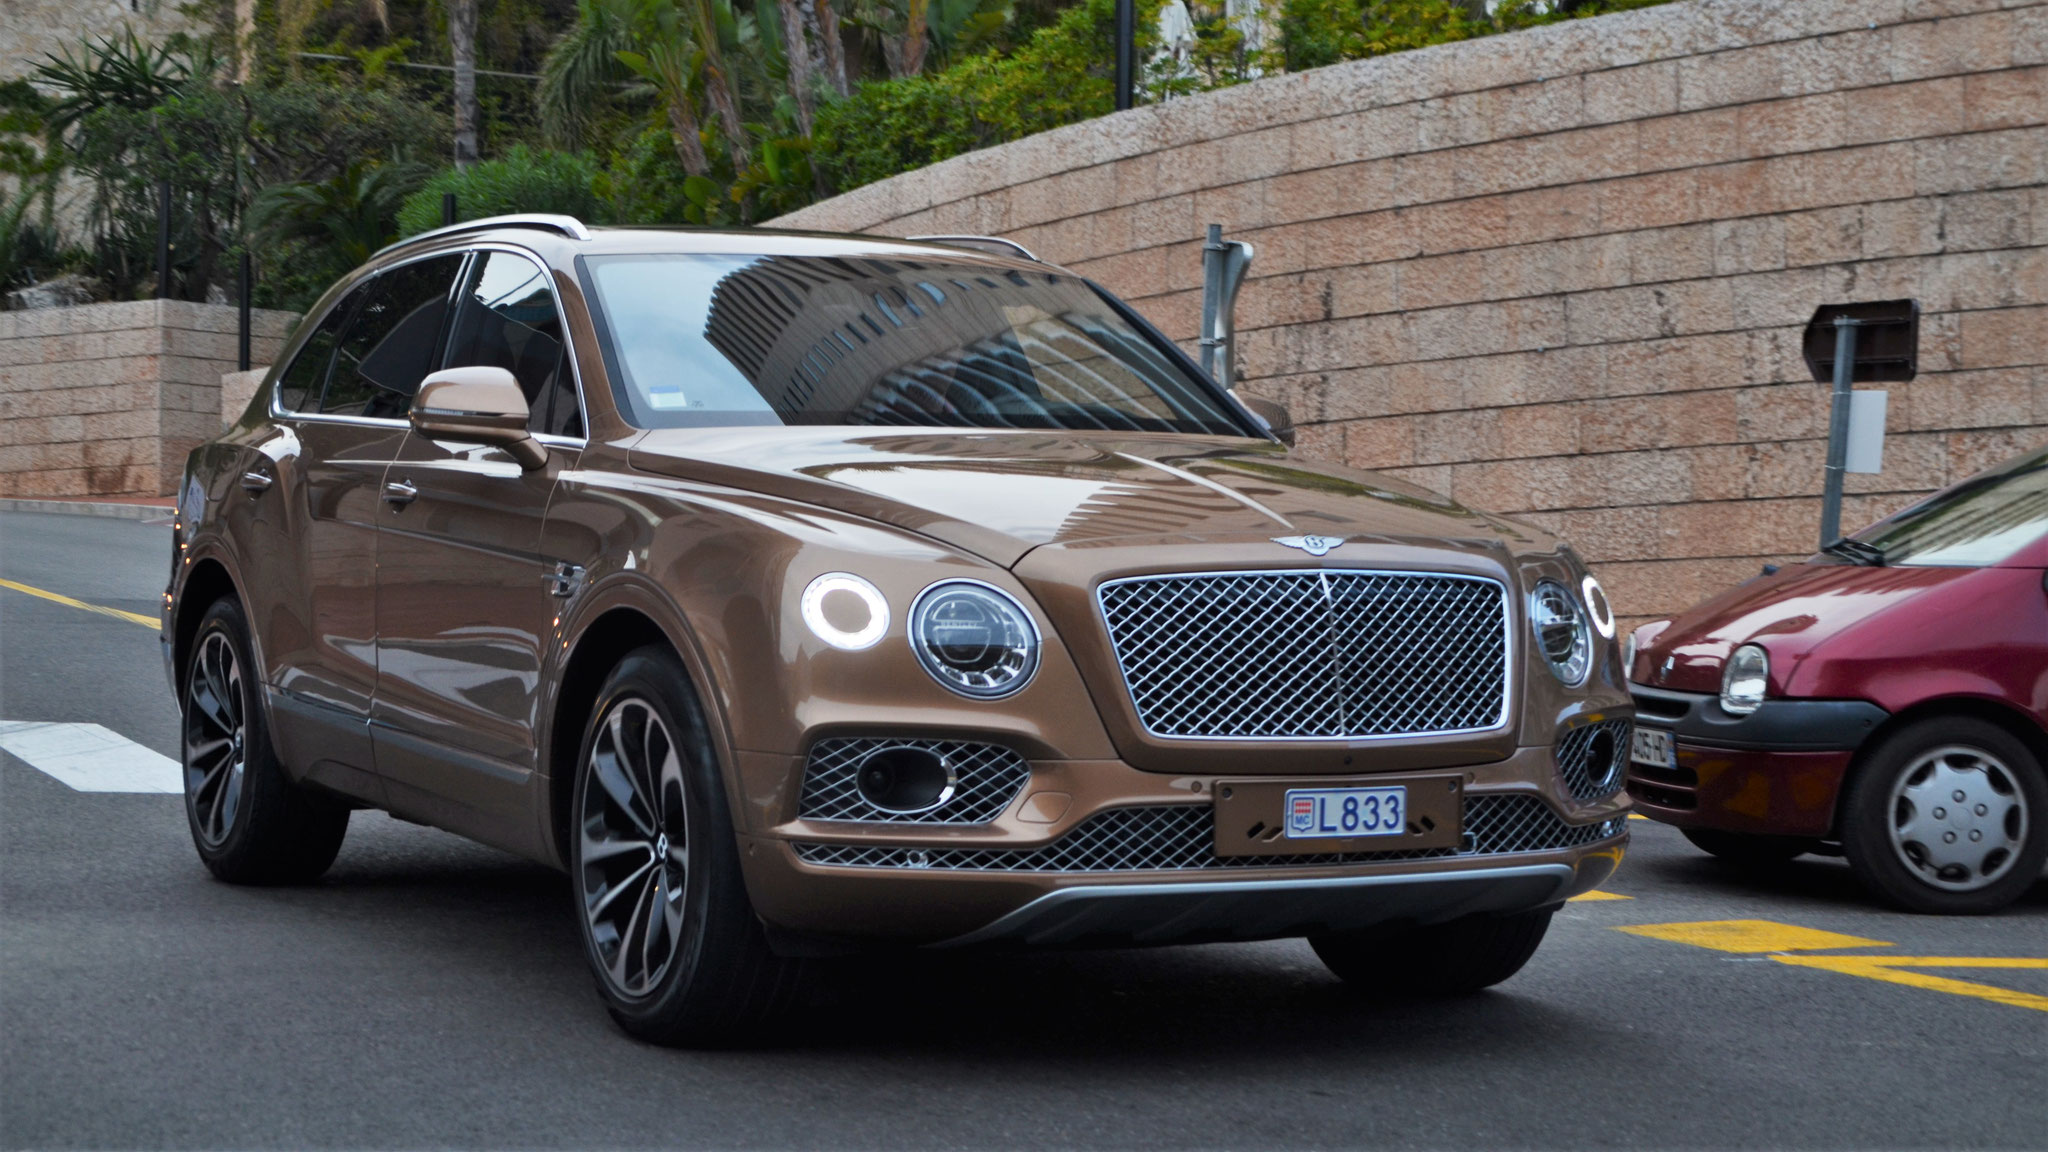 Bentley Bentayga - L833 (MC)